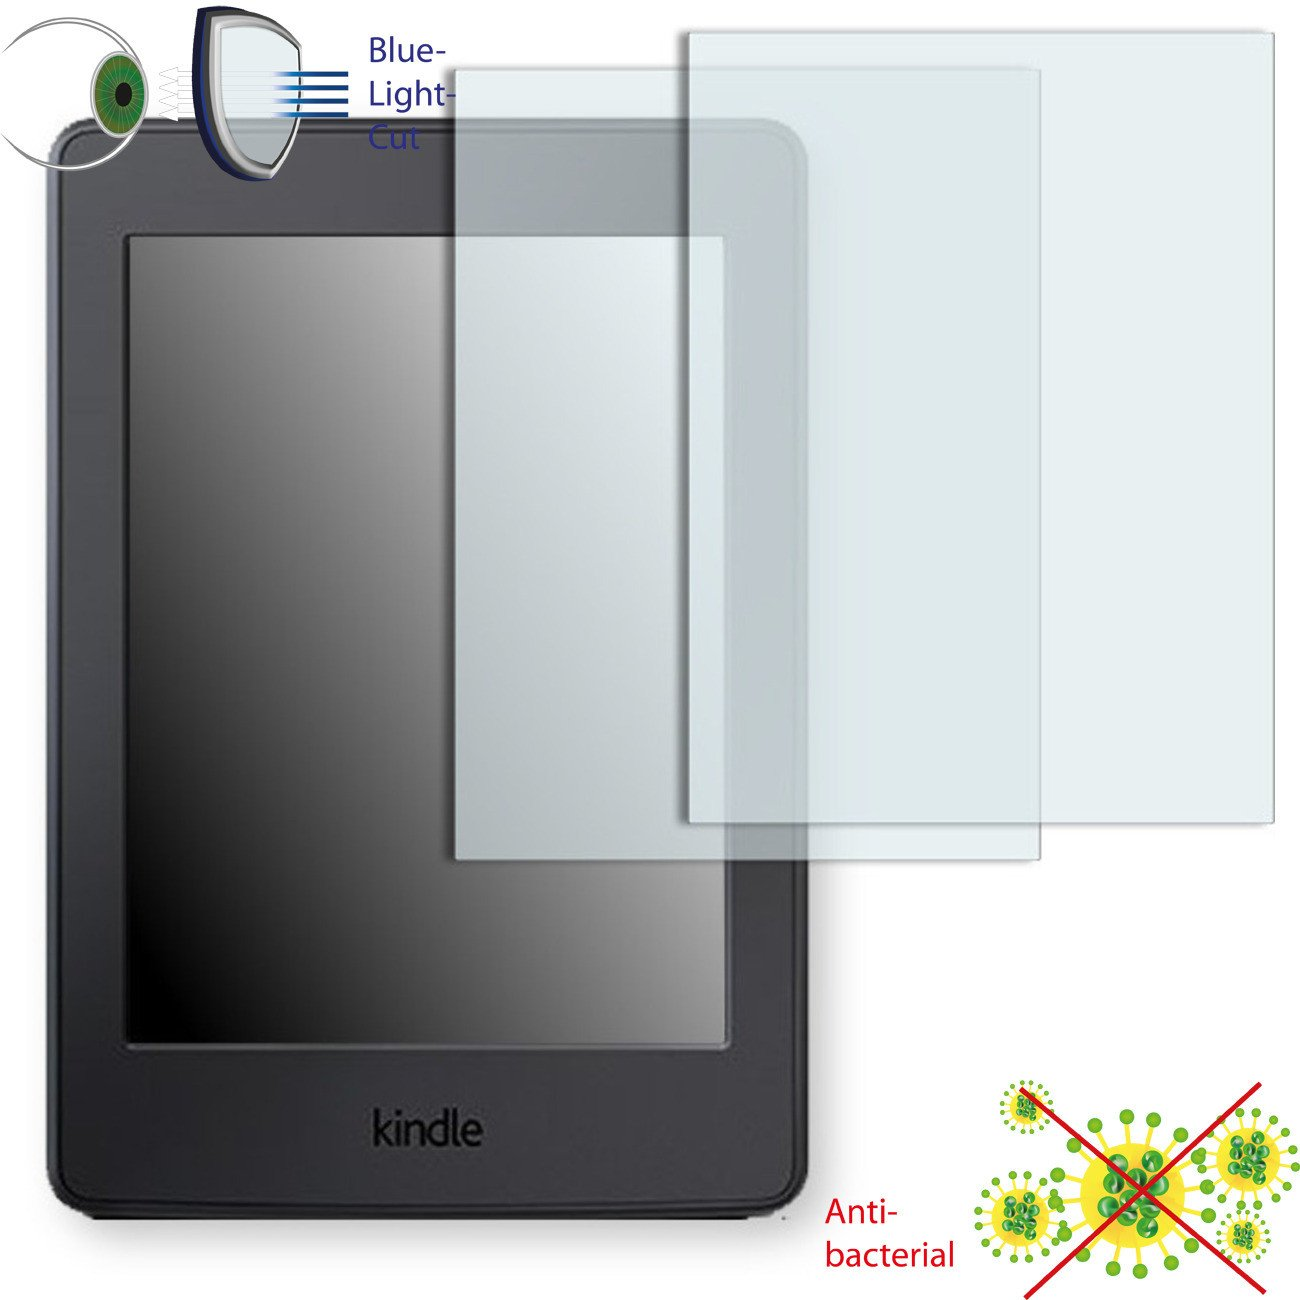 2 x DISAGU ClearScreen screen protection film for Amazon Kindle Paperwhite 3G antibacterial, BlueLight filter protective film